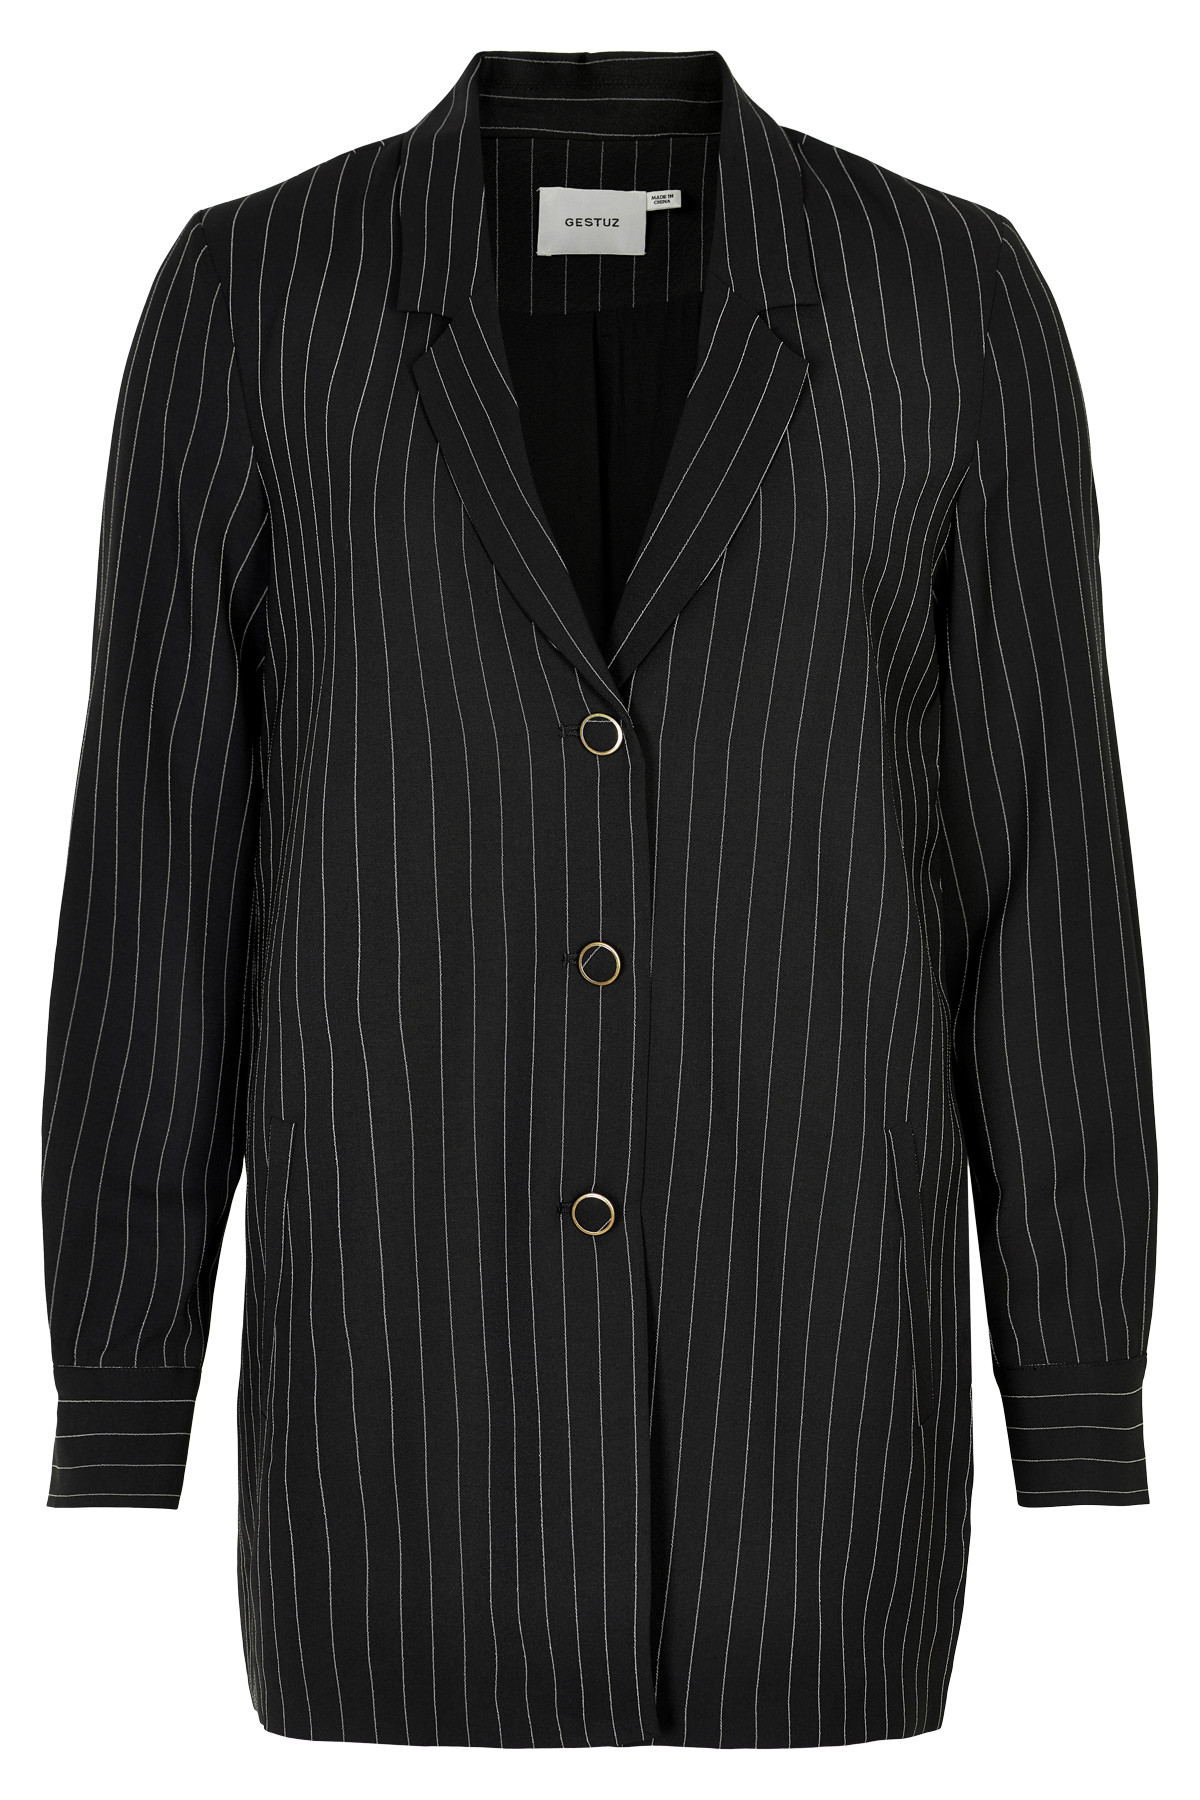 Image of   GESTUZ TARA BLAZER B (Black W. White Stripes 90136, 38)